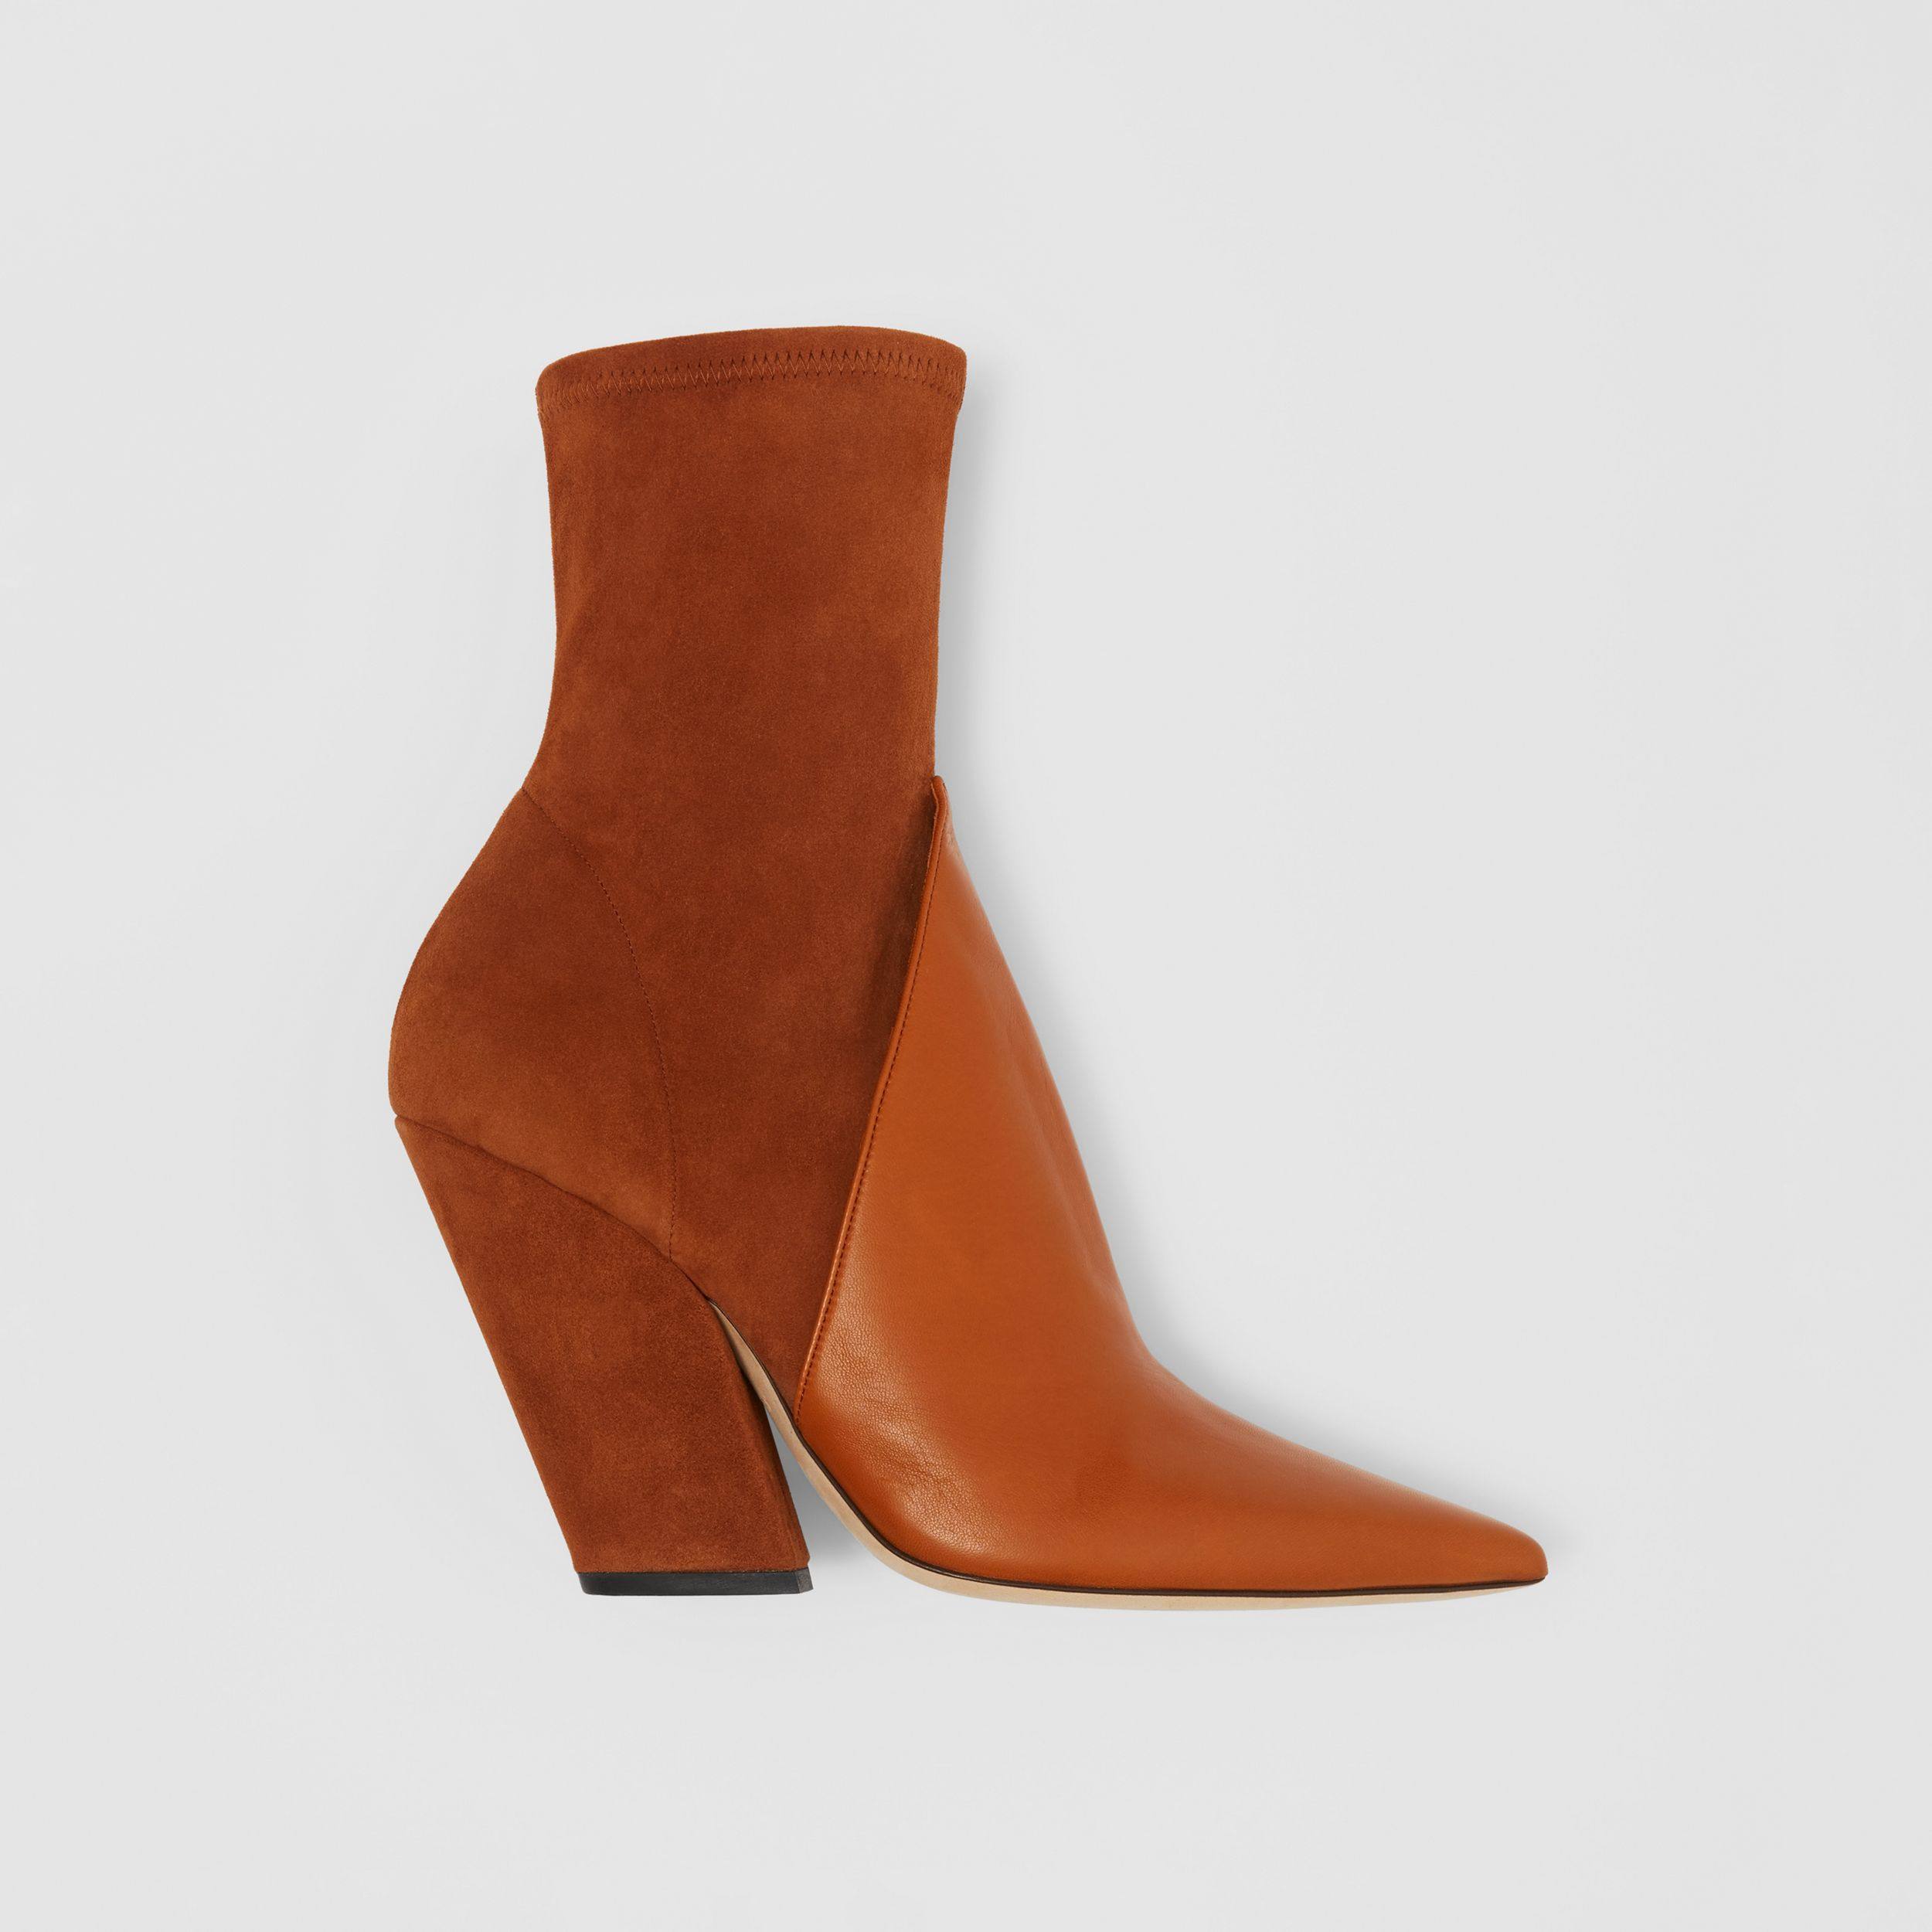 Panelled Suede and Lambskin Ankle Boots in Nutmeg - Women | Burberry United Kingdom - 1